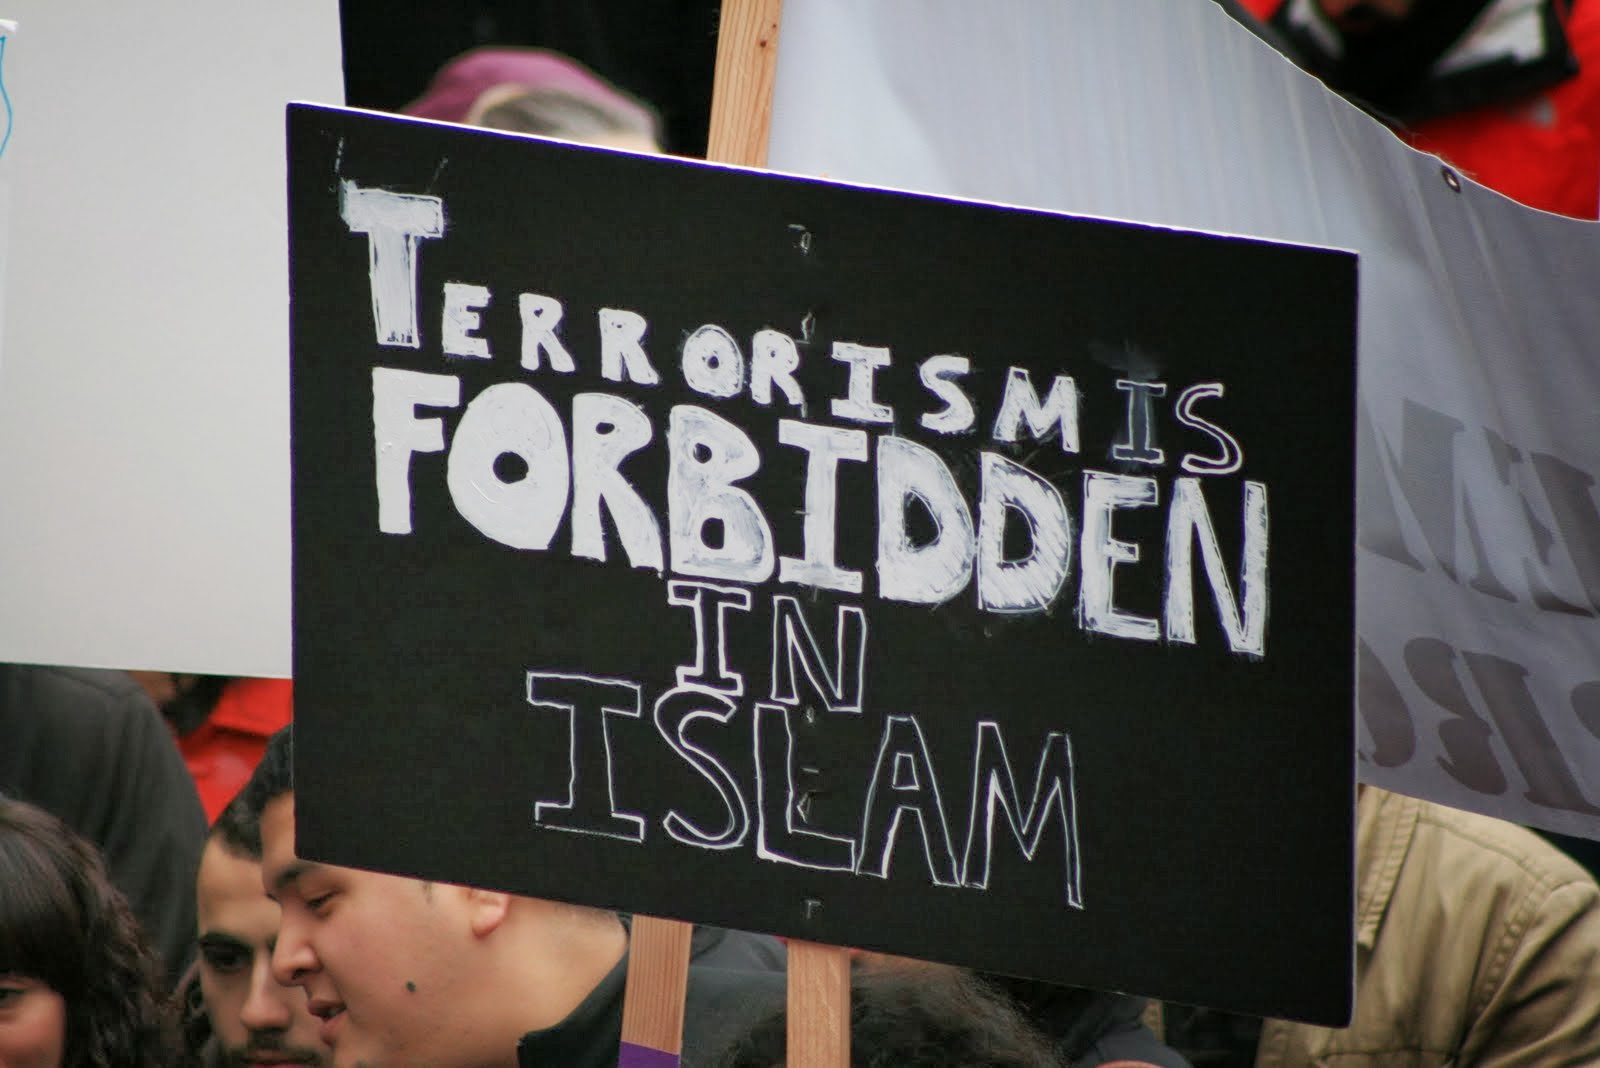 Islam Against Terrorism4.jpg